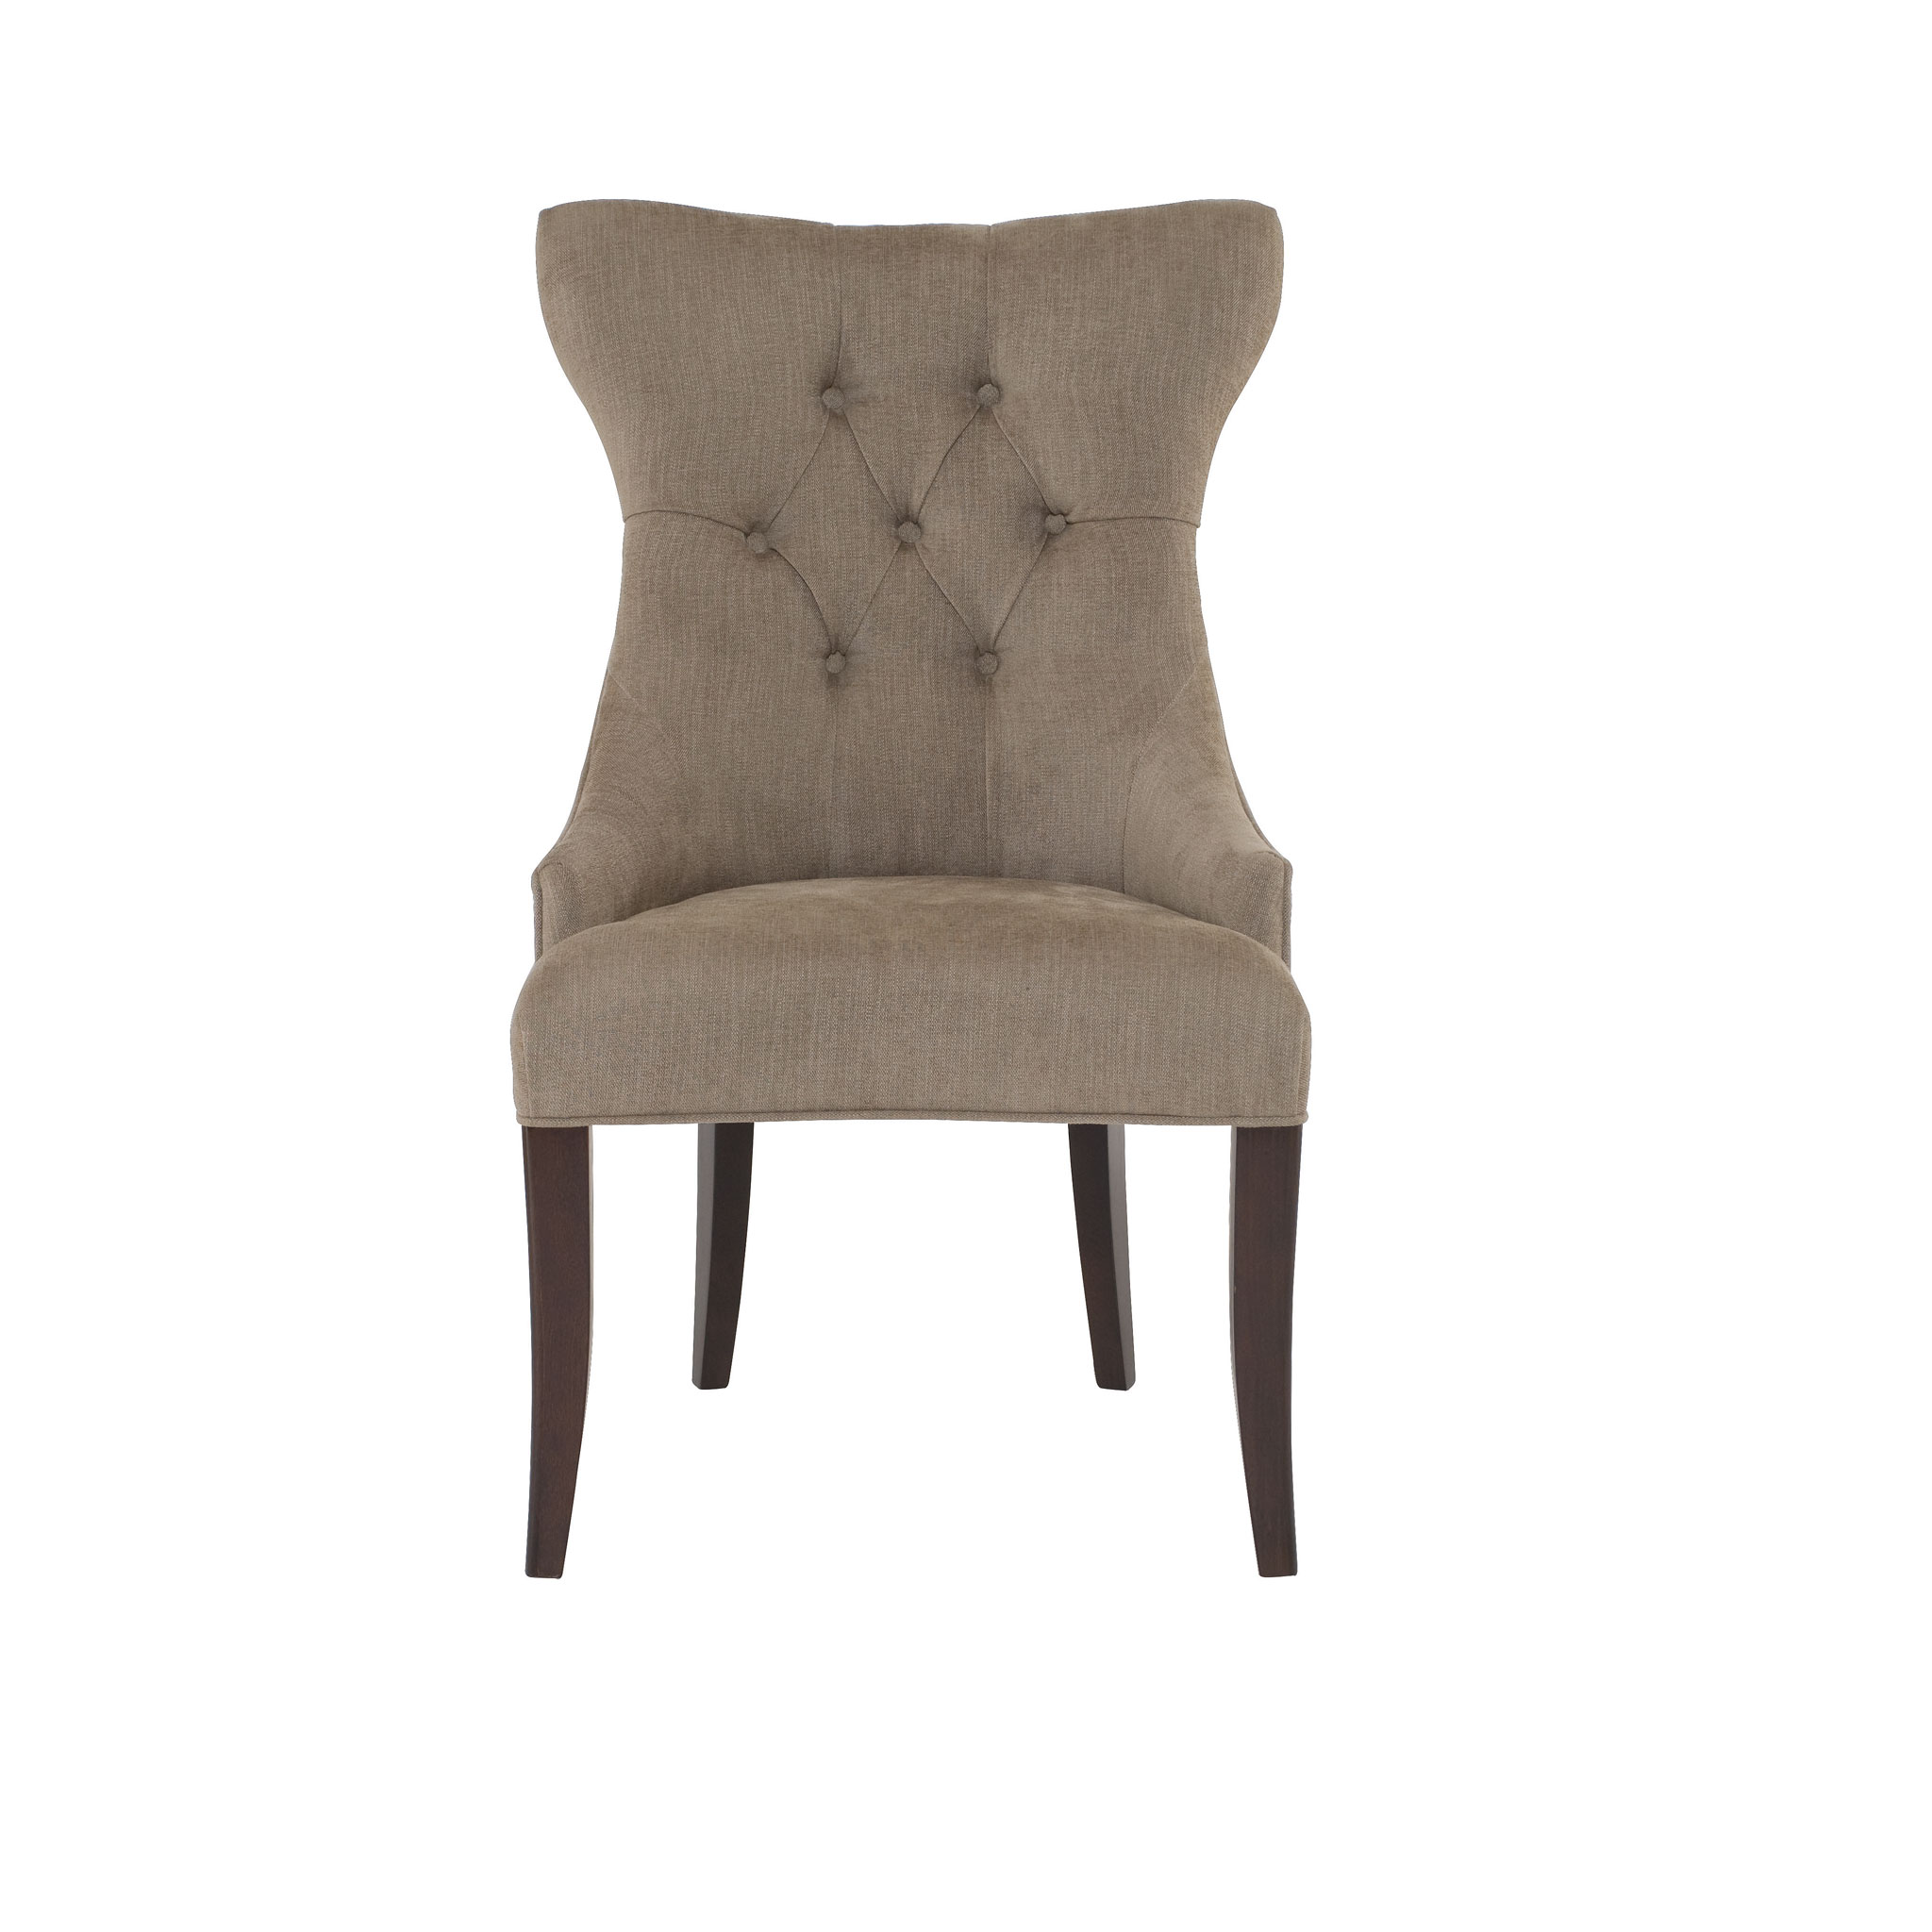 Deco tufted back chair